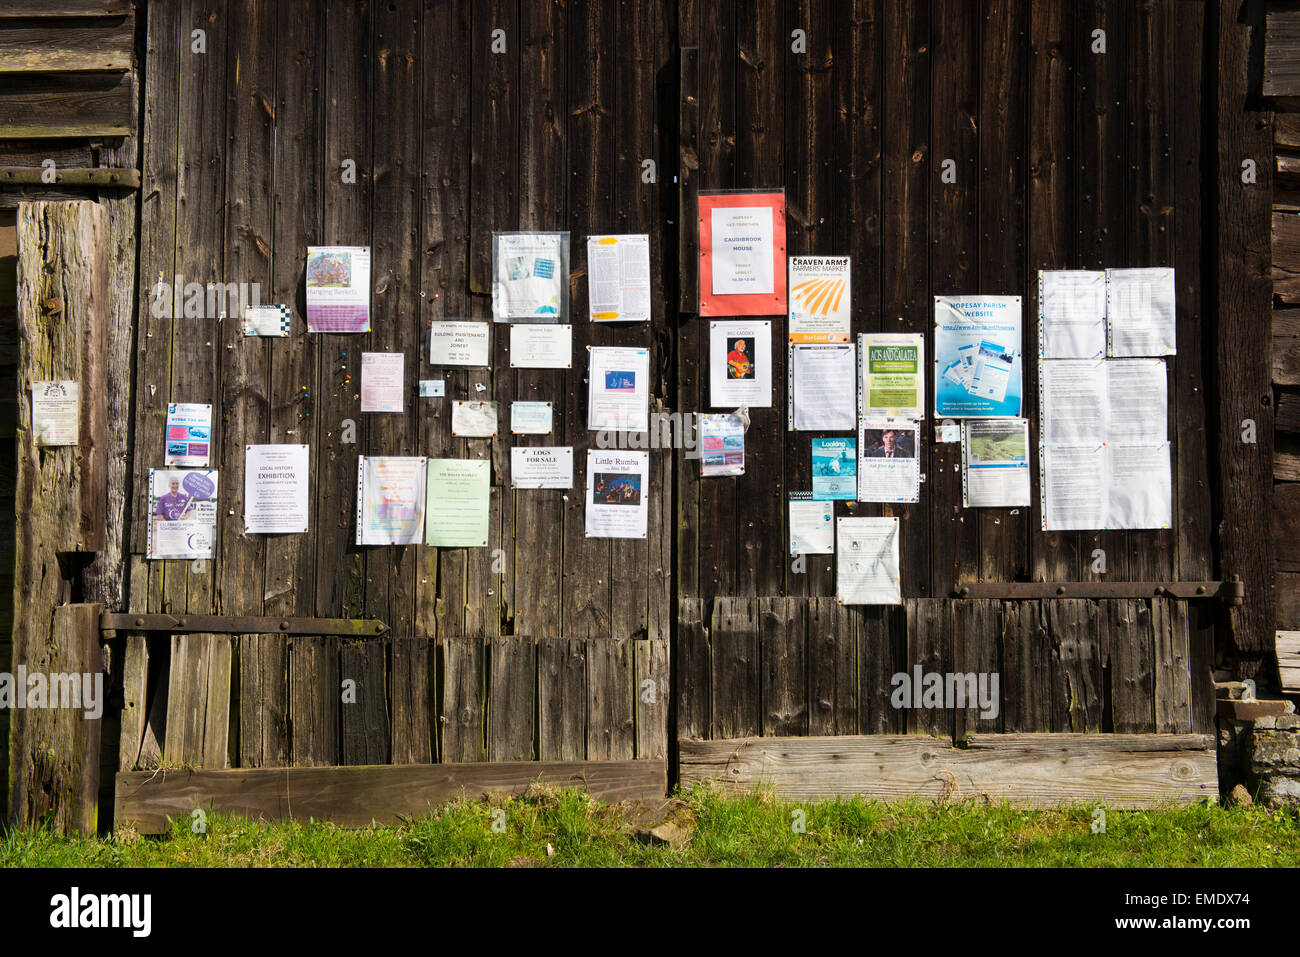 The village noticeboard displayed on the side of an old barn in Hopesay, Shropshire. - Stock Image